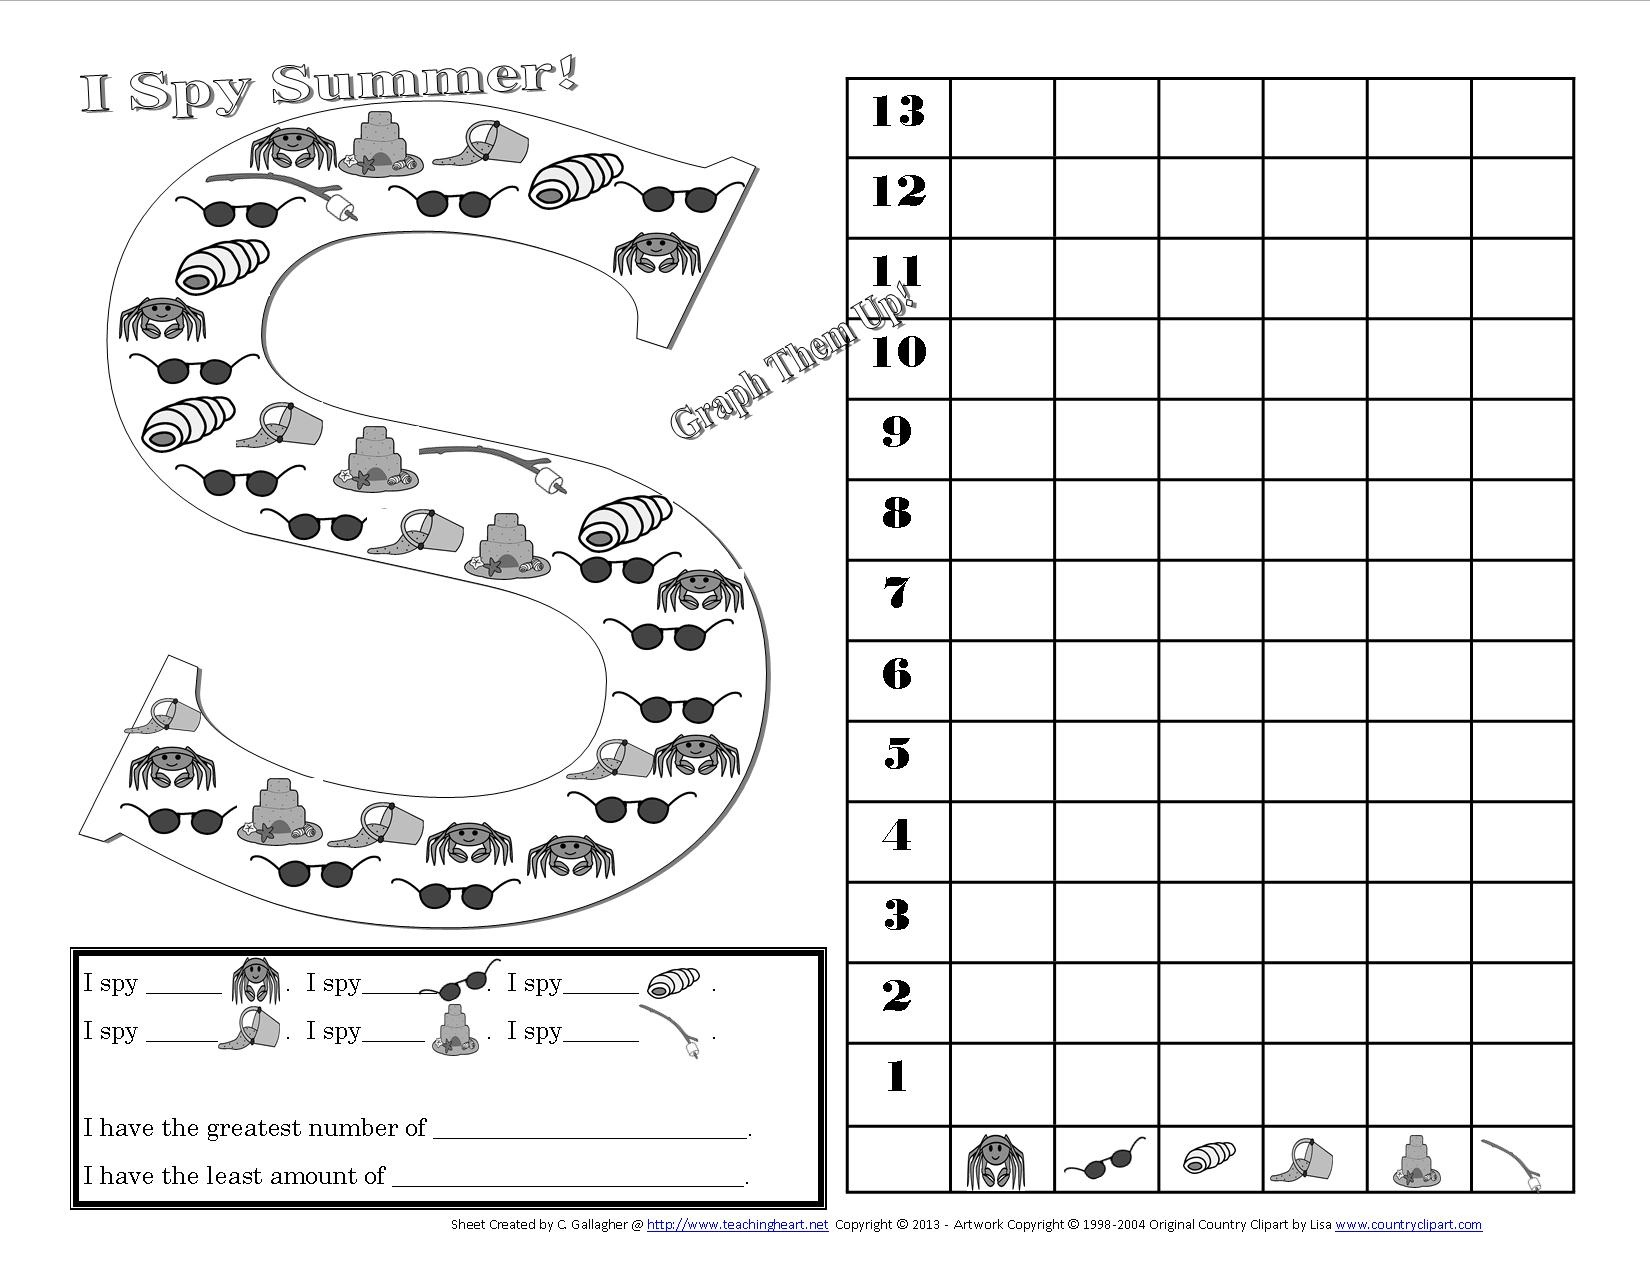 A Beach Unit - Beach Lessons, Links, Ideas, And More For The Classroom! - Free Summer Bridge Activities Printables